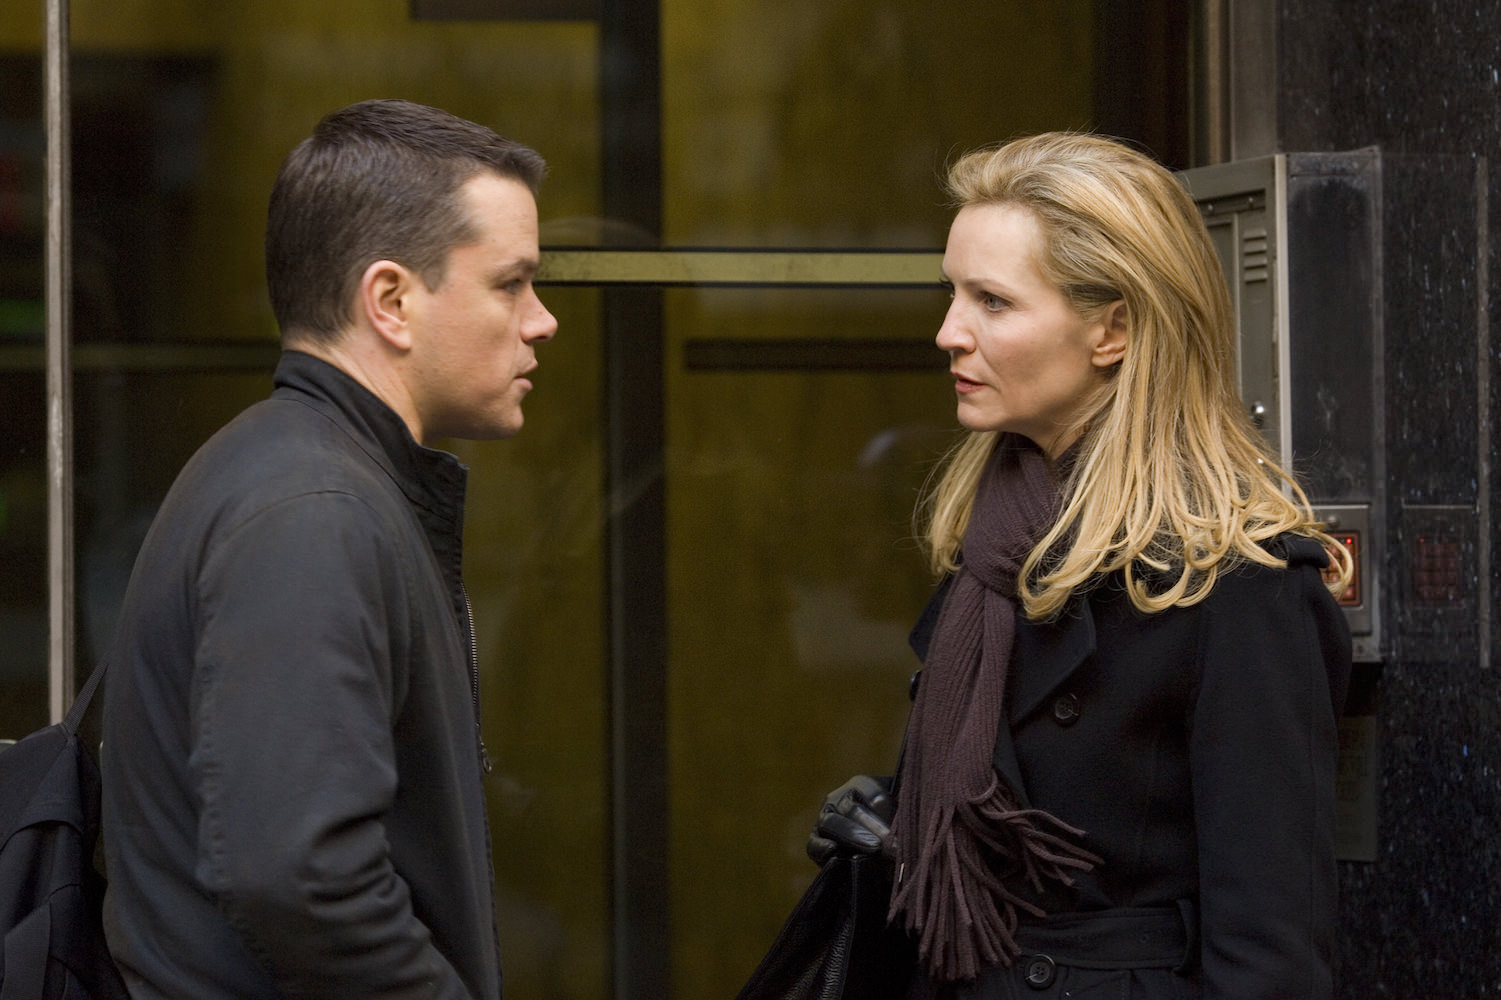 La vengeance dans la peau matt damon joan allen paul greengrass